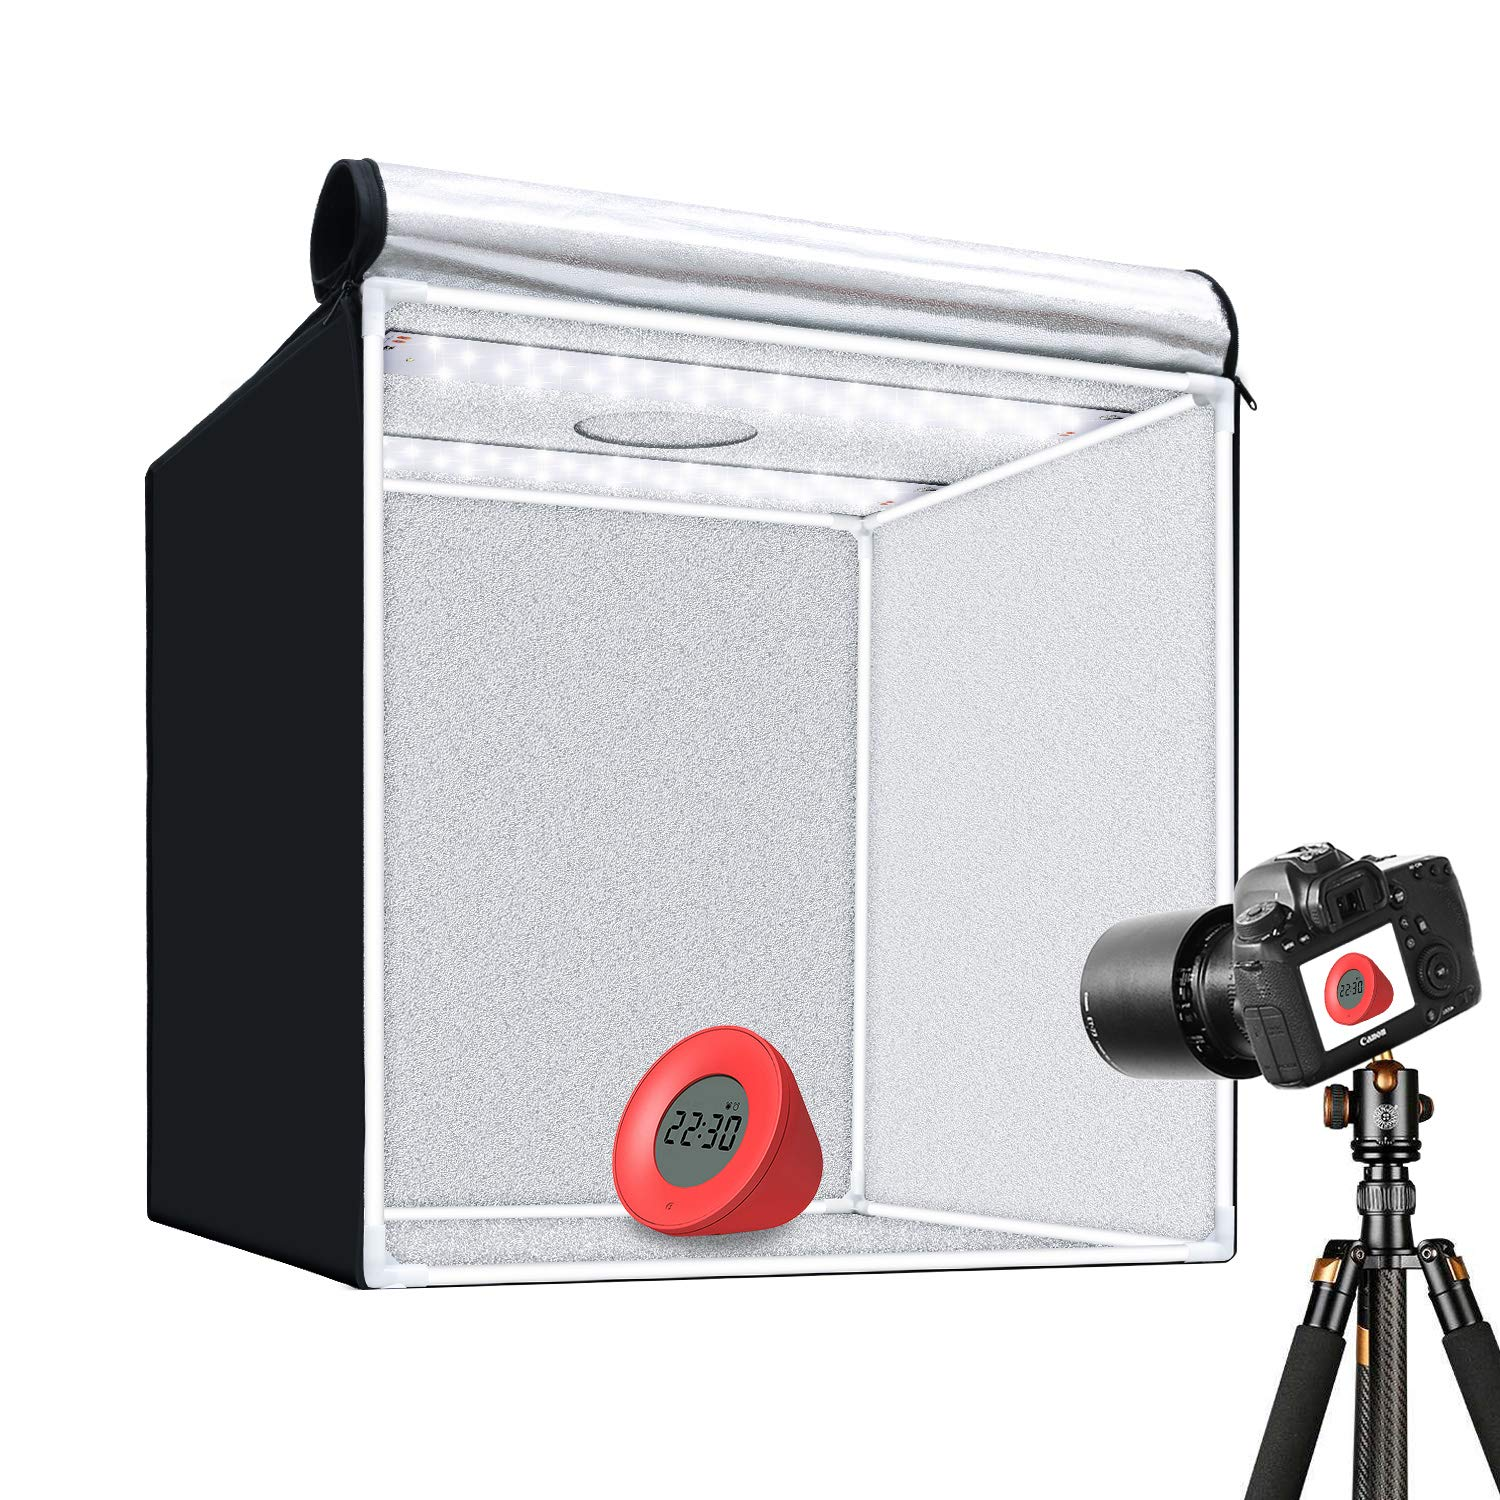 GVM Portable Photo Light Box, 24x24 inch/60x60 cm, Professional Photo Studio with LED Light, Foldable and Easy Set up Table Top Photo Lighting Studio, Photo Studio Kit for Photography by GVM (Image #1)